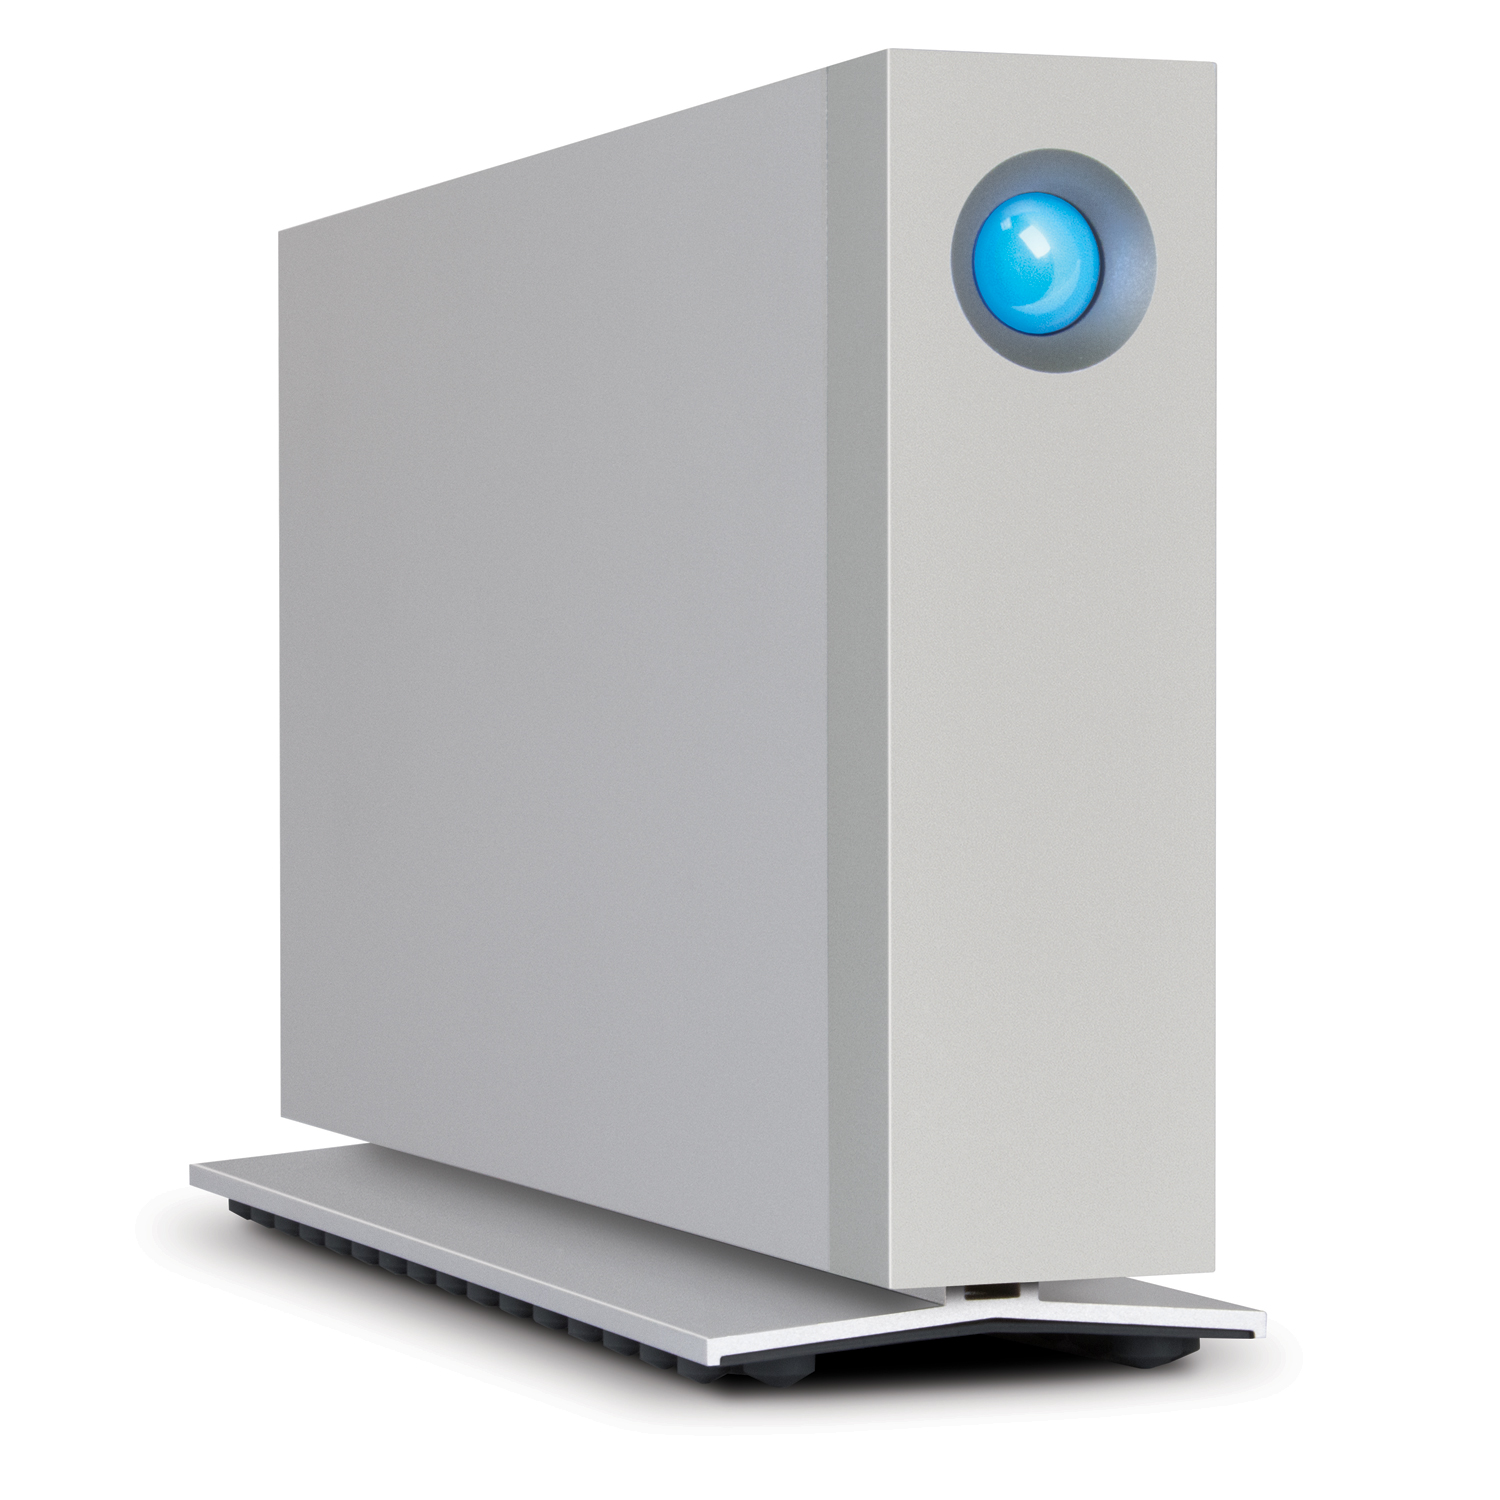 lacie d2 thunderbolt 2 et usb 3 0 4 to disque dur externe lacie sur. Black Bedroom Furniture Sets. Home Design Ideas